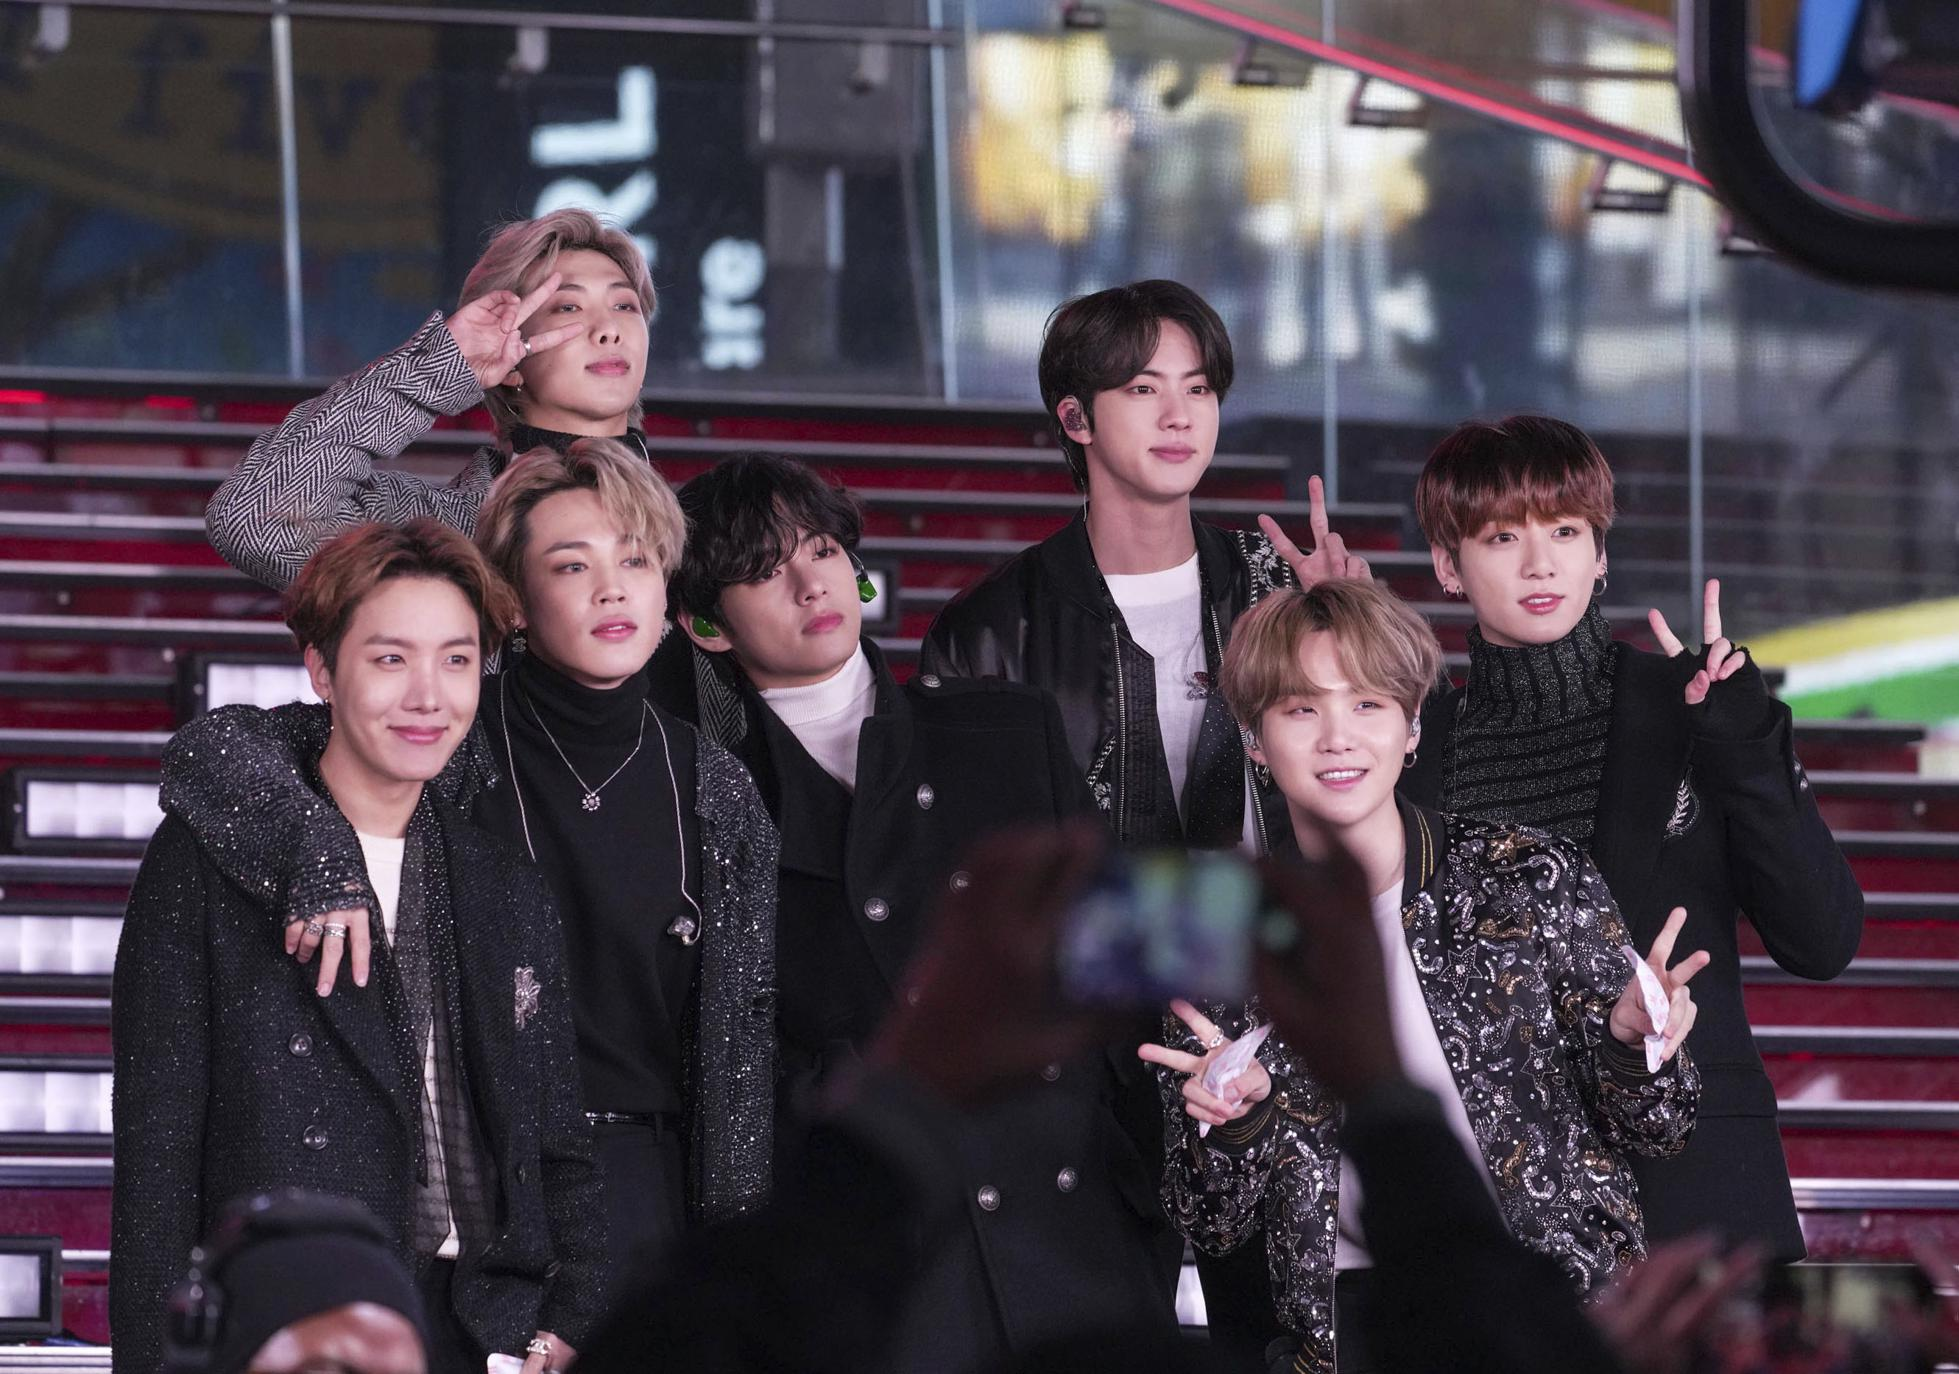 BTS shares incidents of racism and condemns anti-Asian violence